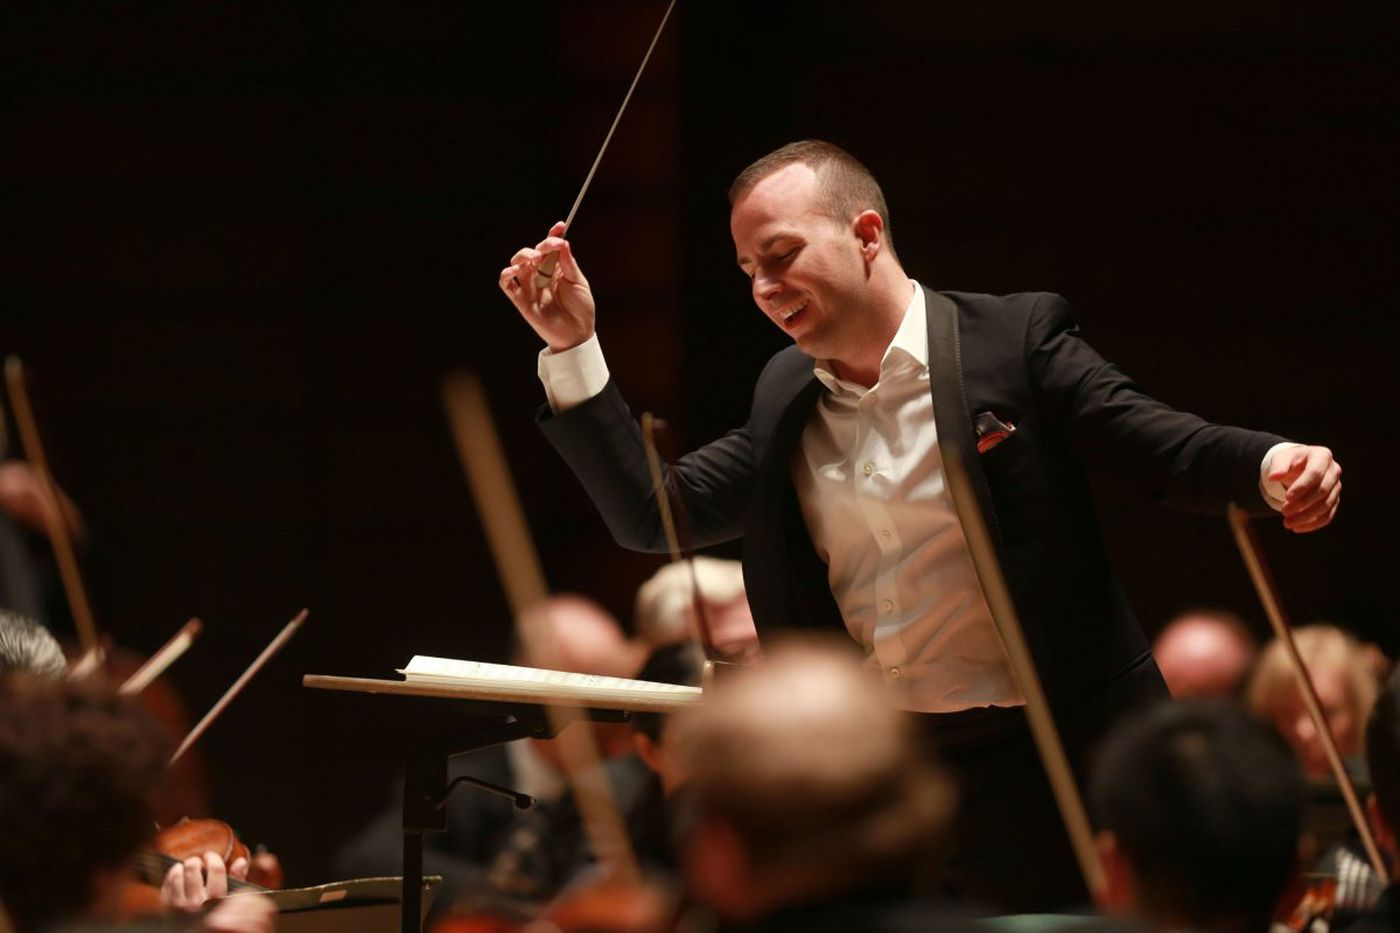 Repetitive maestro injury that sidelined Yannick seems OK for Philadelphia Orchestra opener